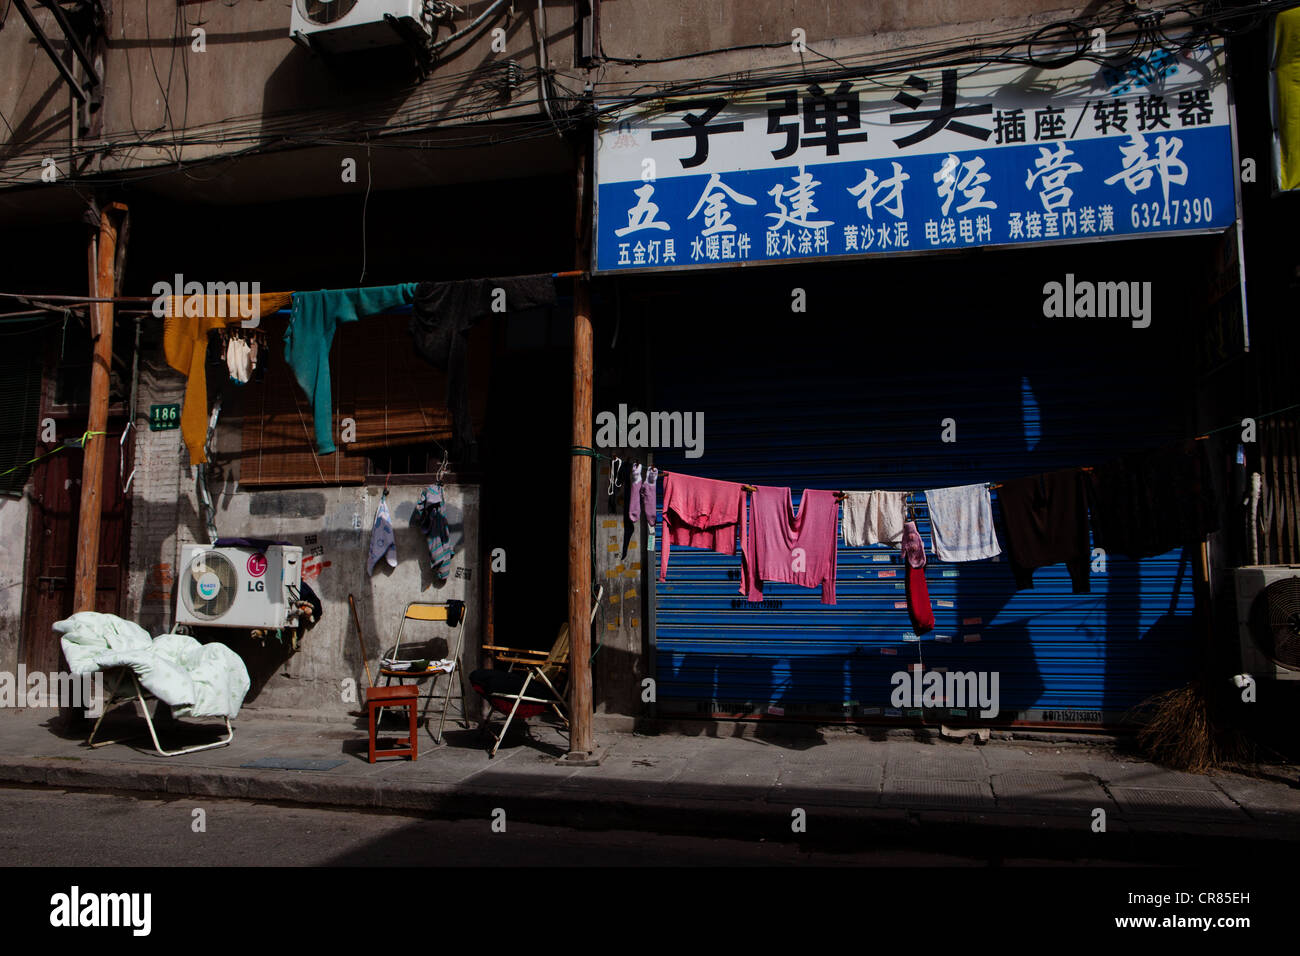 Laundry shop stock photos laundry shop stock images alamy laundry hanging outside of shop in streets of shanghai china stock image solutioingenieria Images